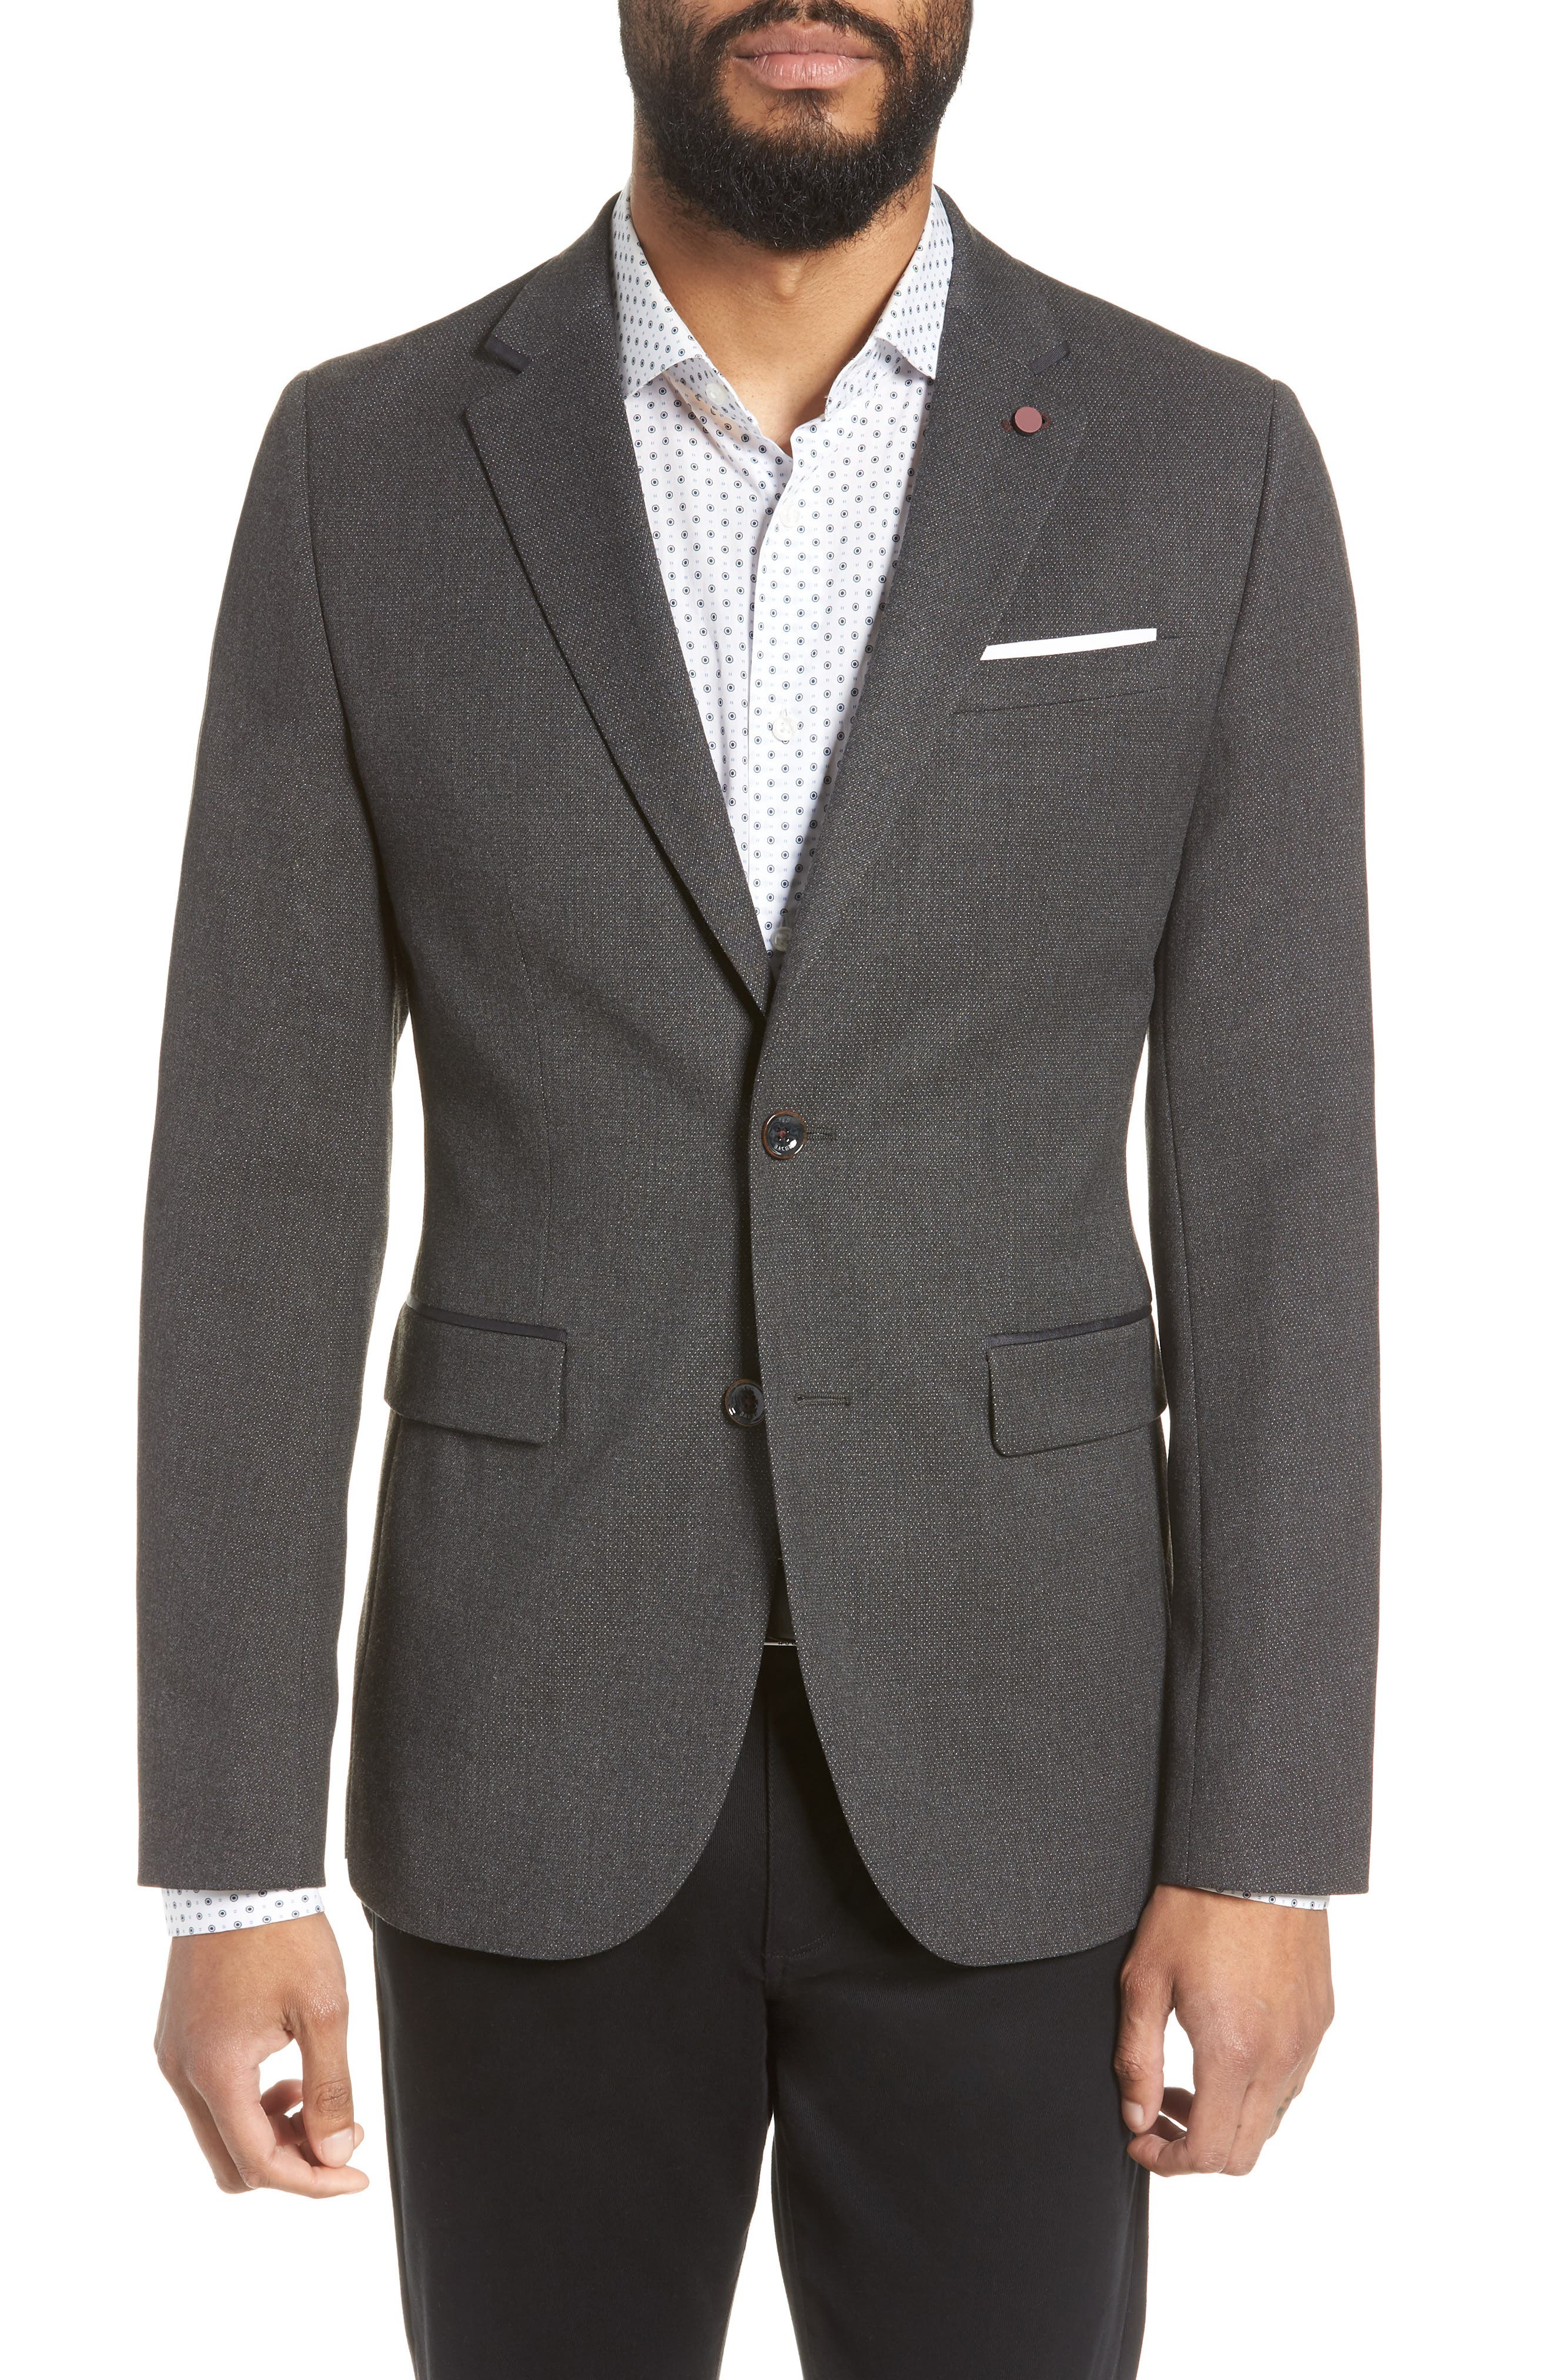 Hazlnut Trim Fit Sport Coat,                             Main thumbnail 1, color,                             020